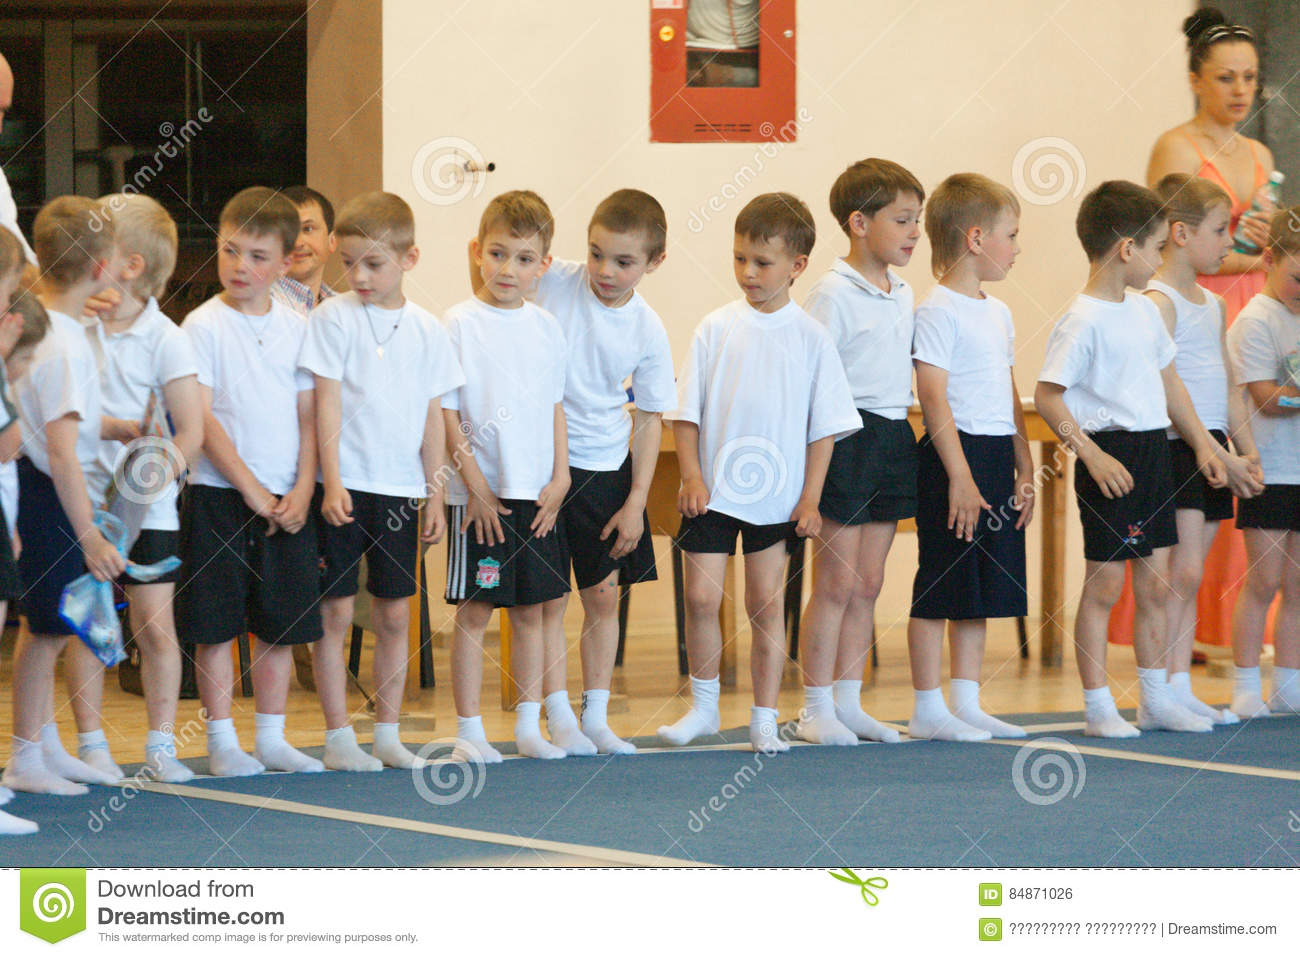 Gomel, Belarus - MAY 21, 2012: The competition among the boys in 2006 - 2007 in gymnastics. Discipline - general physical training